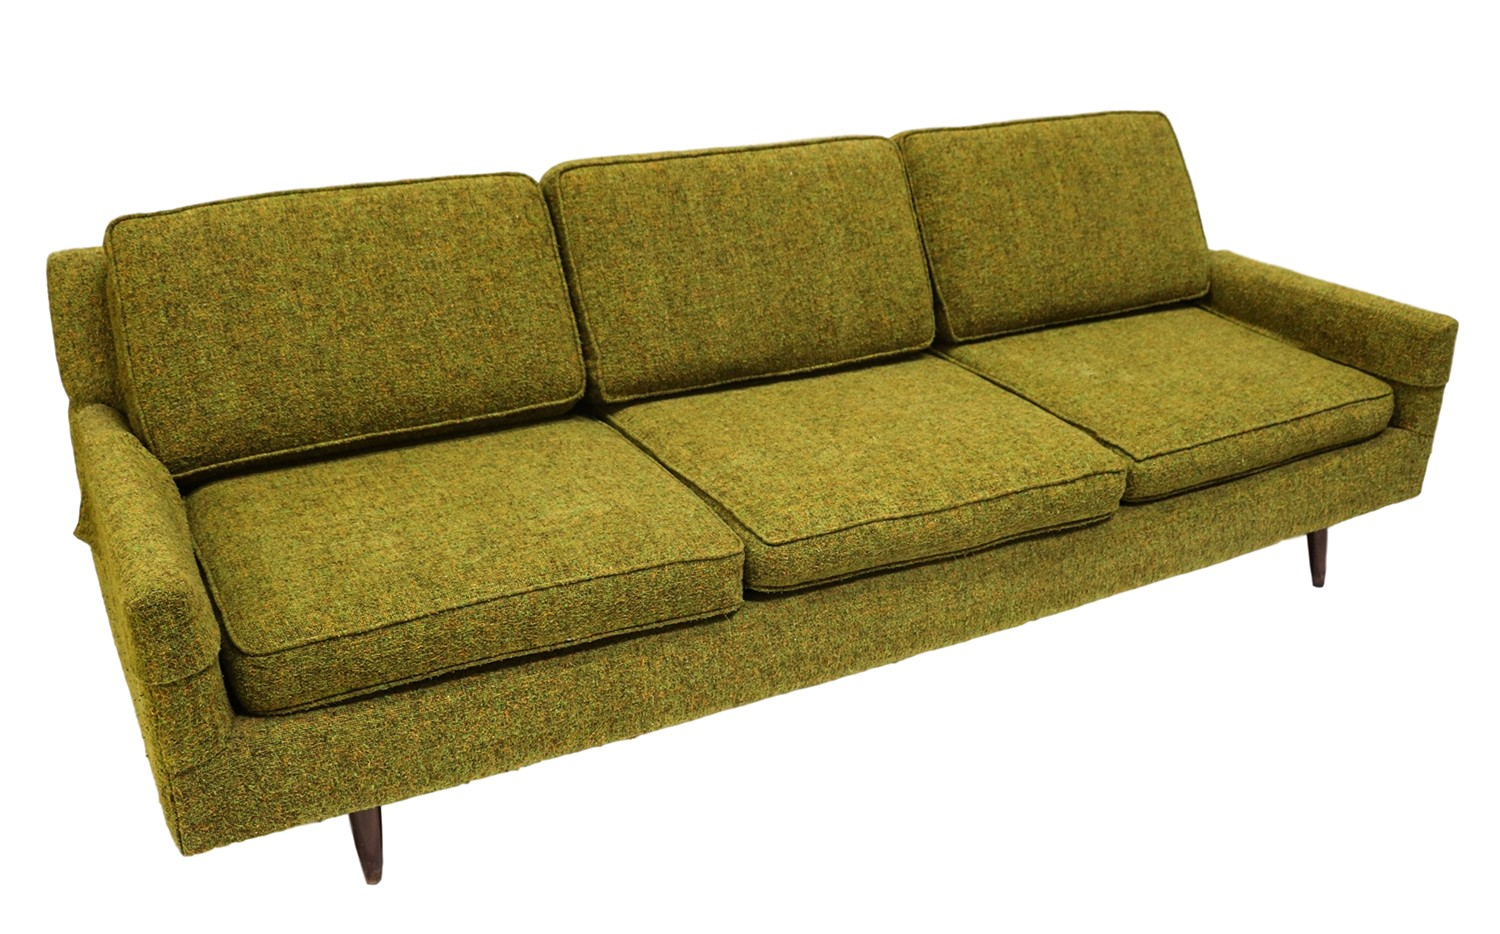 Midcentury Modern Sofa Bed Green Mid Century Couch 1500 43 Trend Home Design 1500